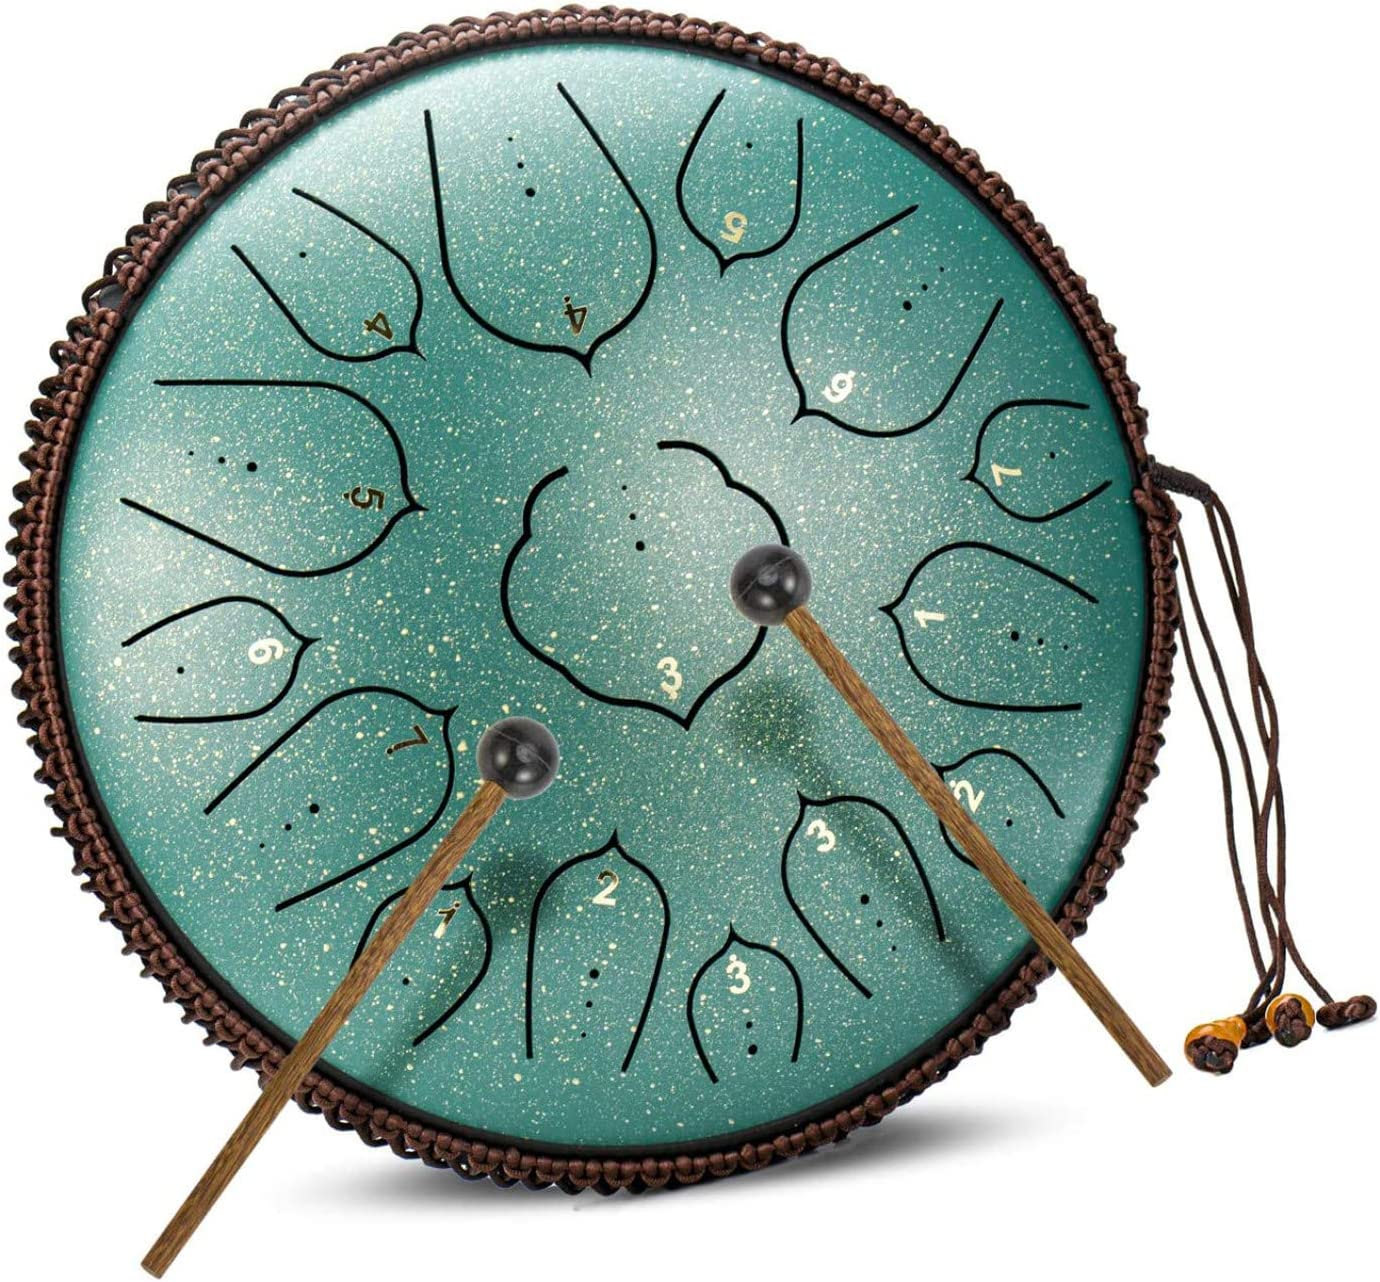 Steel Tongue Drum 14 Inches 15 Tune D Key Percussion Instrument Drum with Mallets Tutorial Book Carrying Bag Hand Pan Drum Kit Tone Sticker for Adults Yoga Practice Meditation